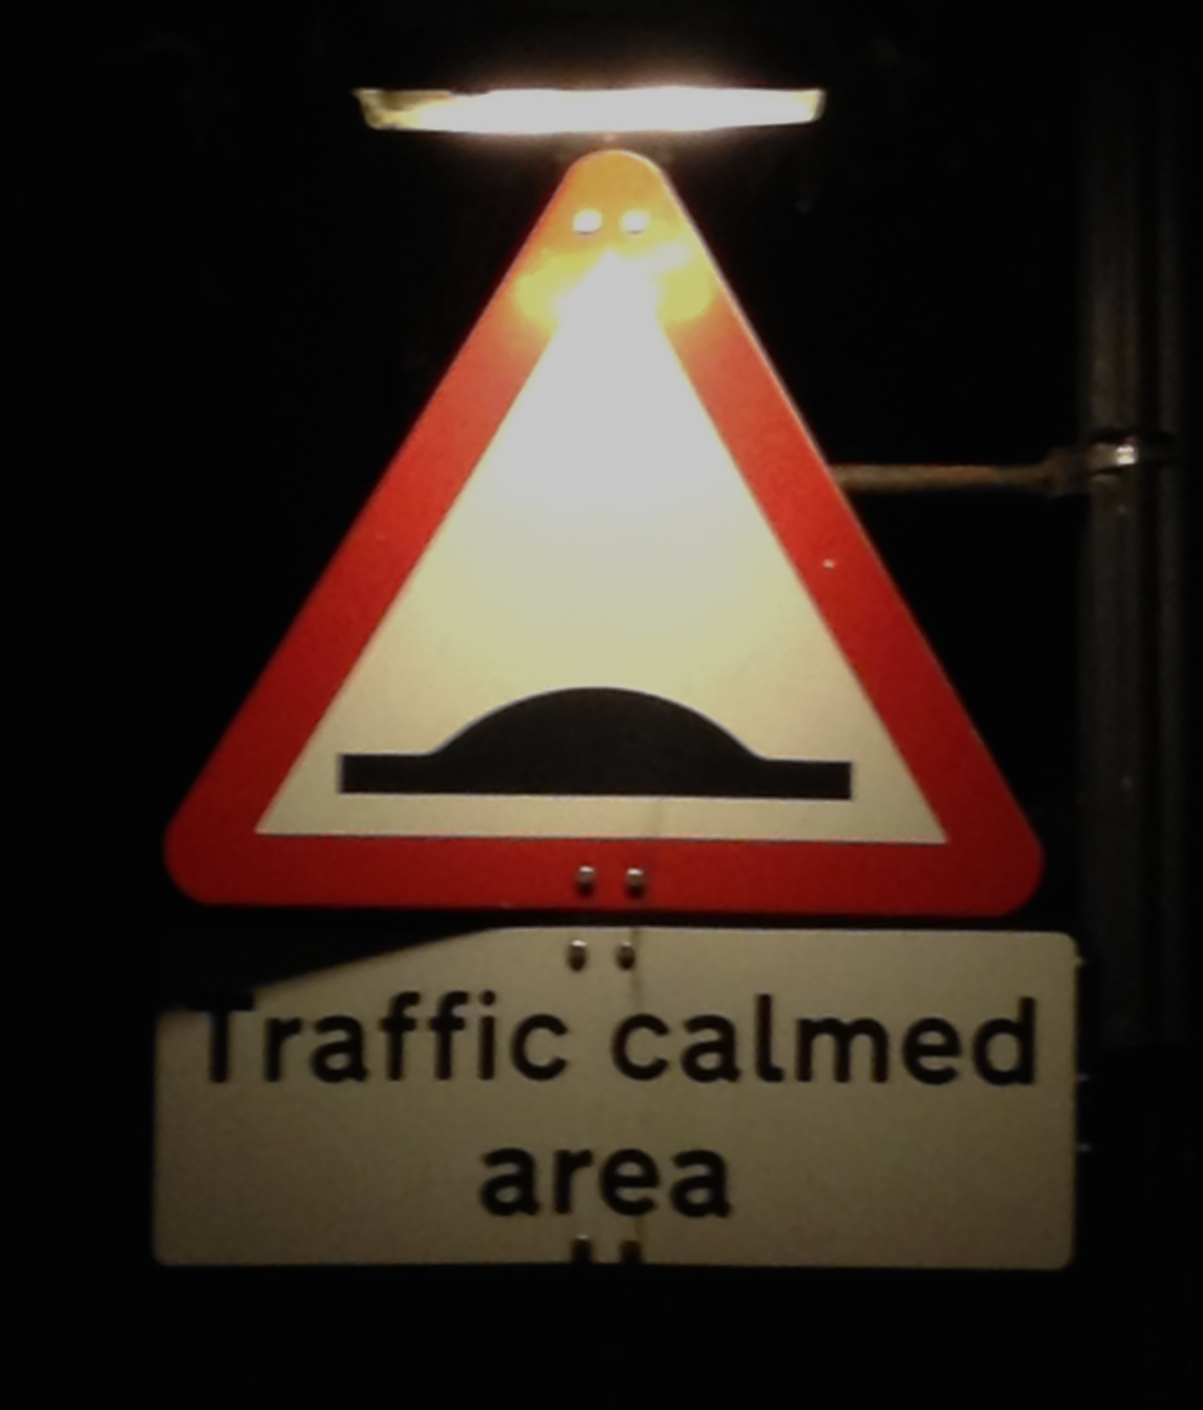 A mound in a triangle means calm traffic?